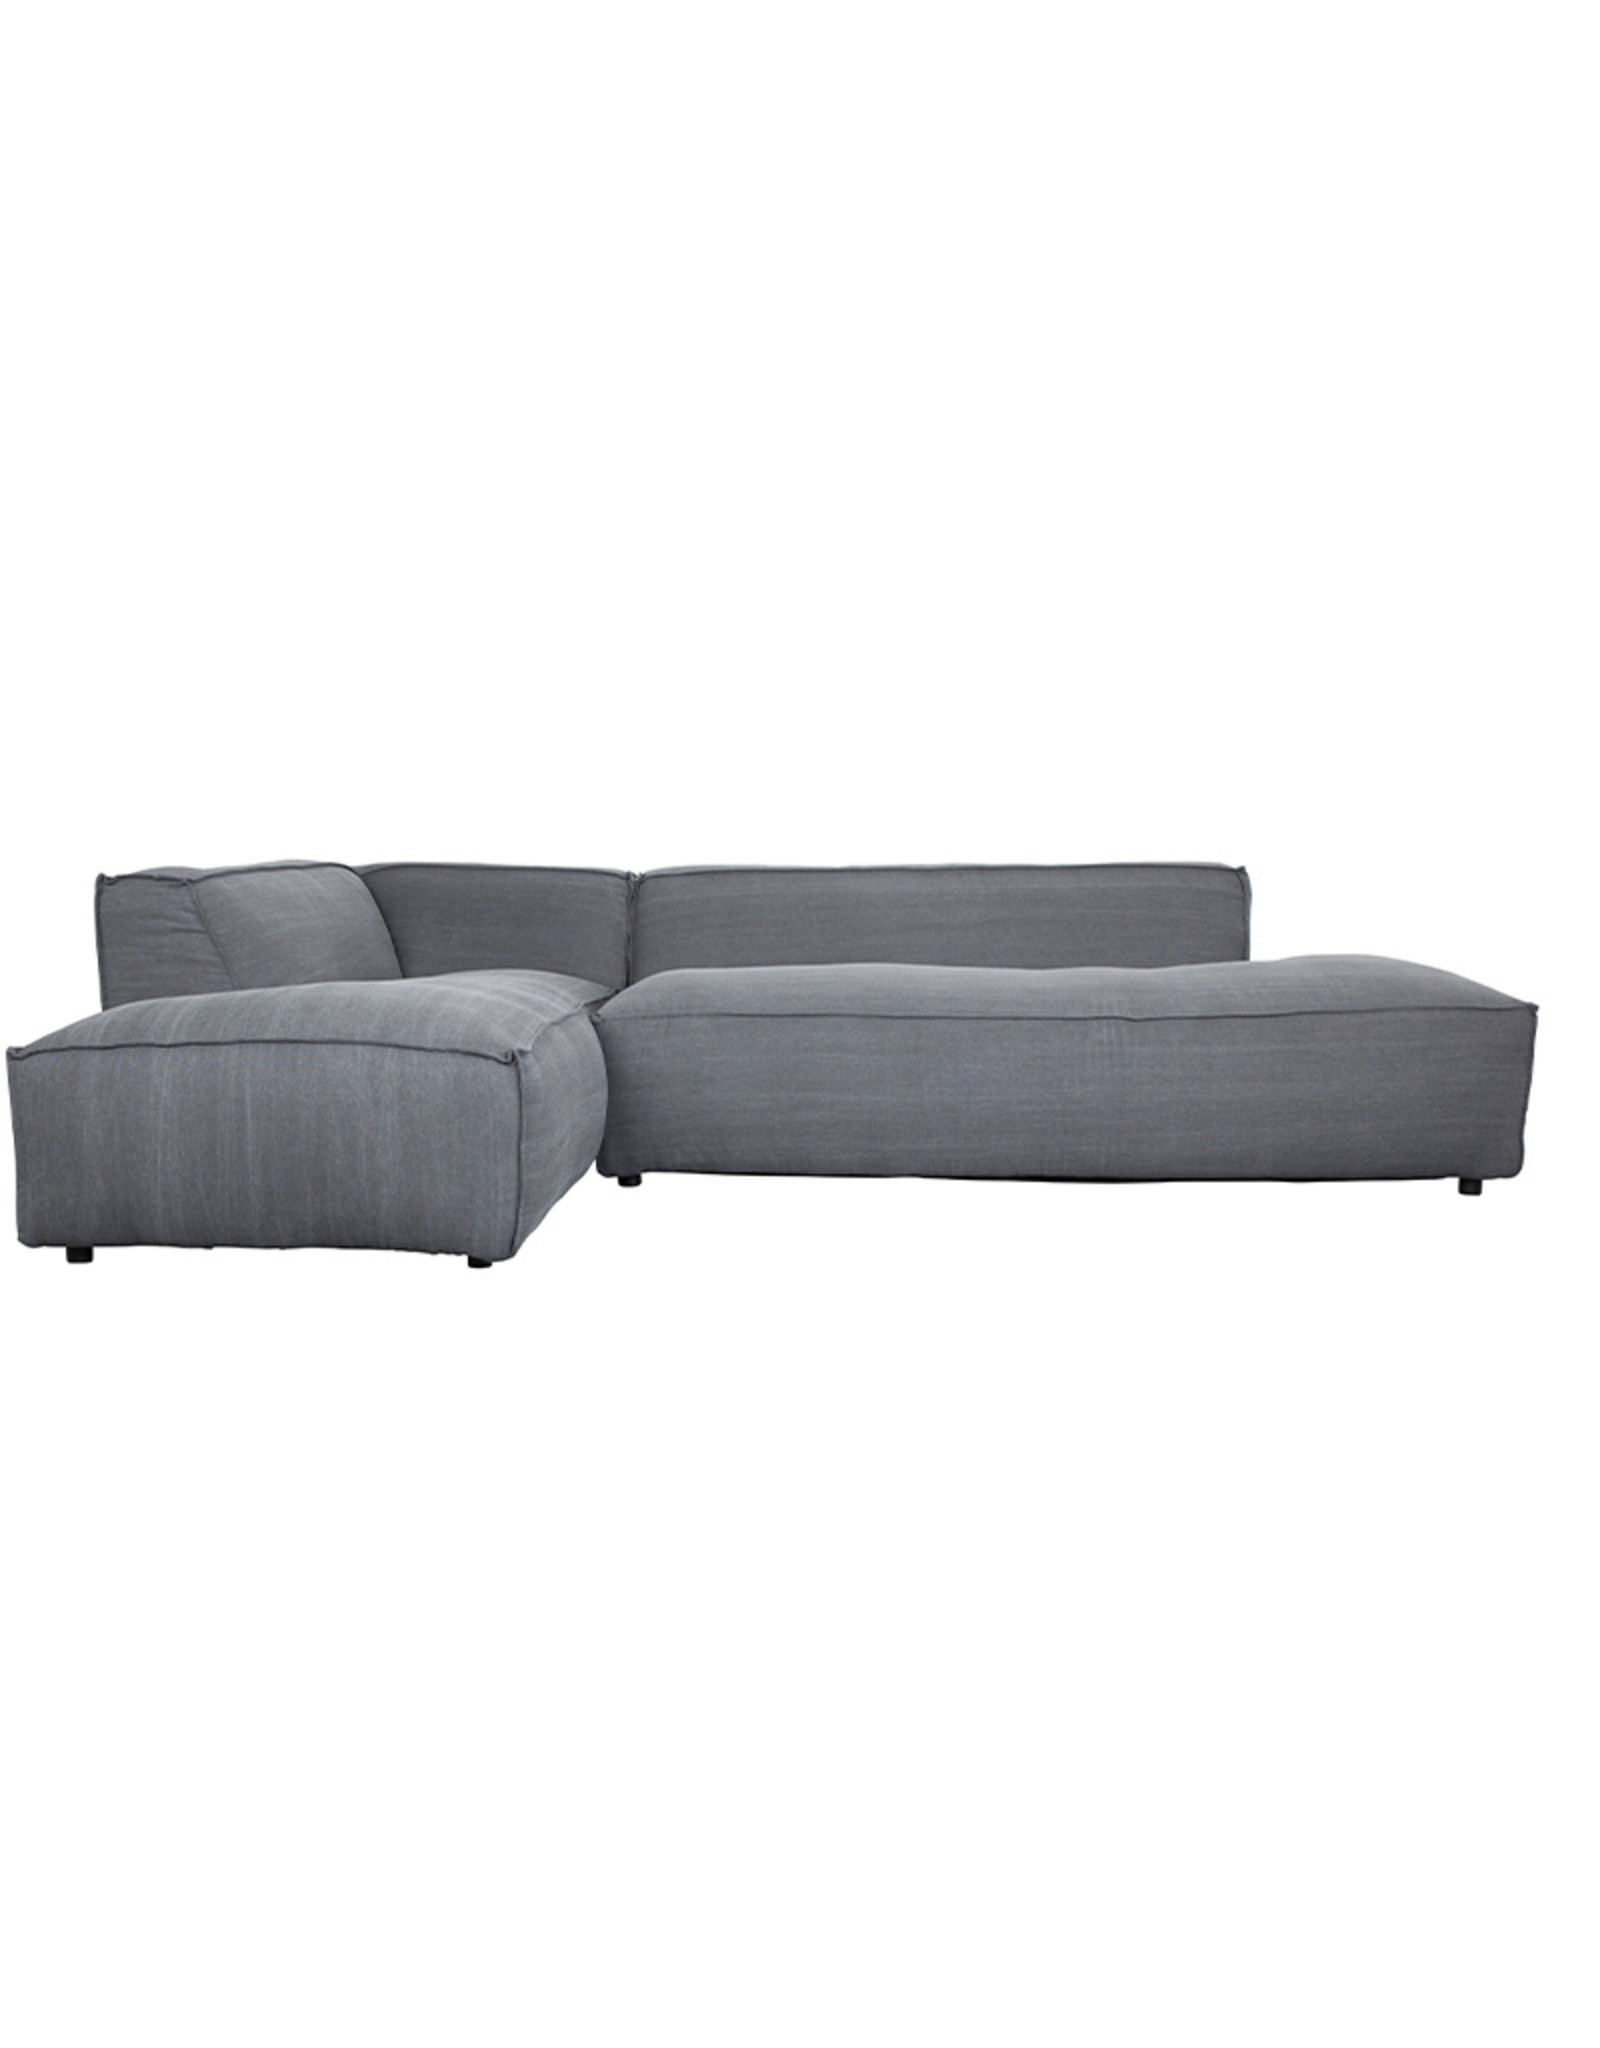 ZUIVER BV Fat Freddy Sofa